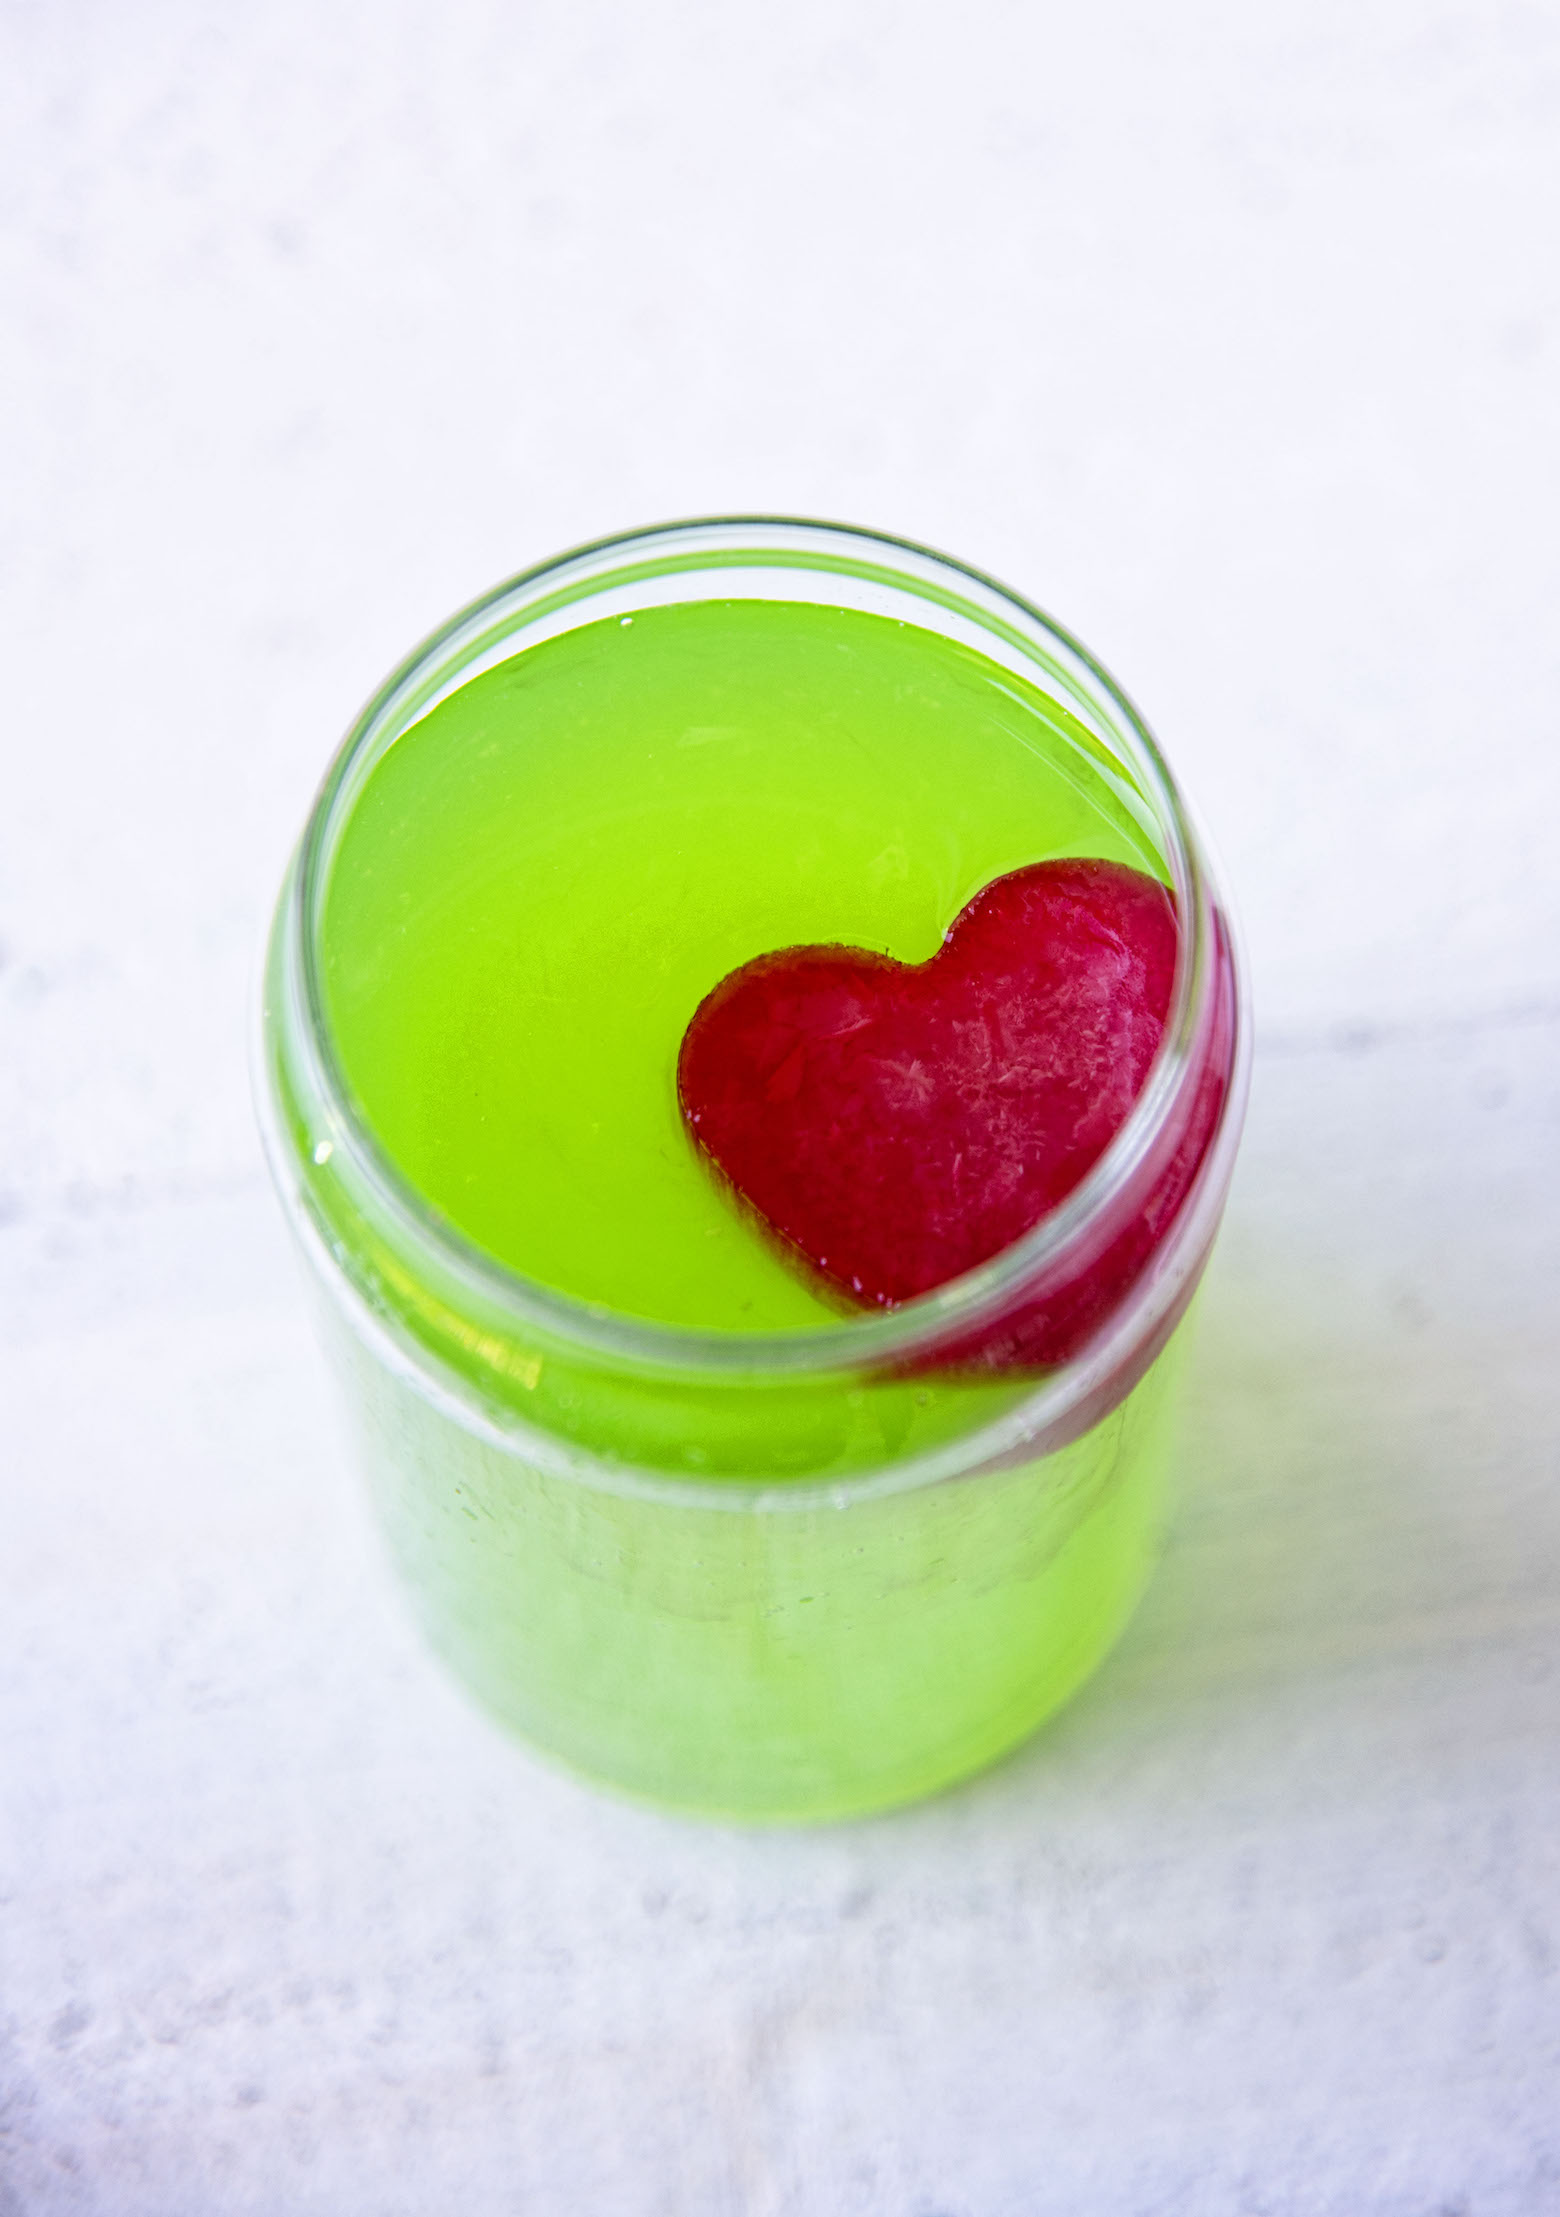 The Grinch Spiked Green Lemonade